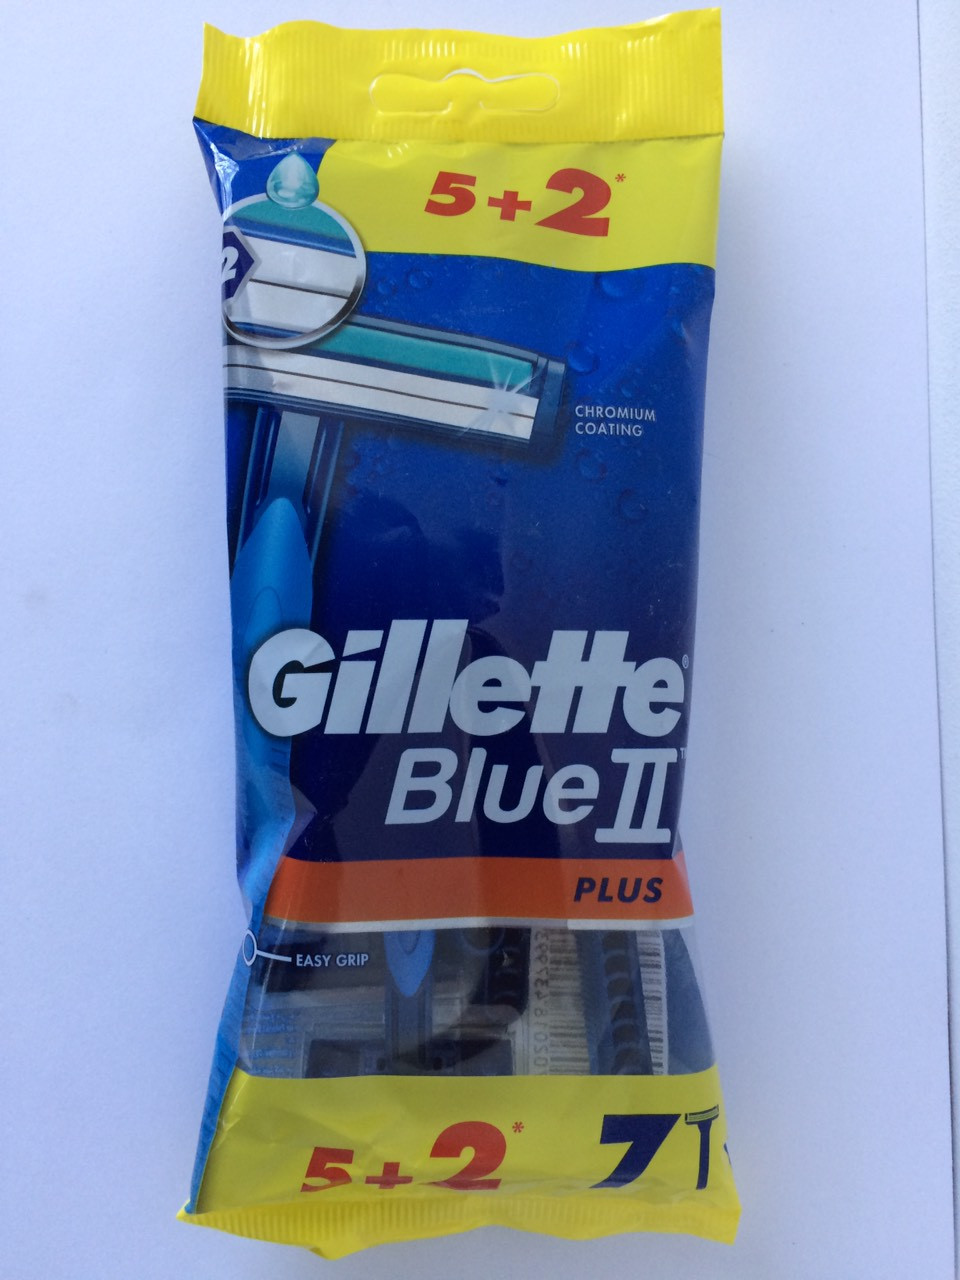 Станок мужской одноразовый для бритья Gillette Blue II Plus  5+2 шт. (Жиллет Блю ll)